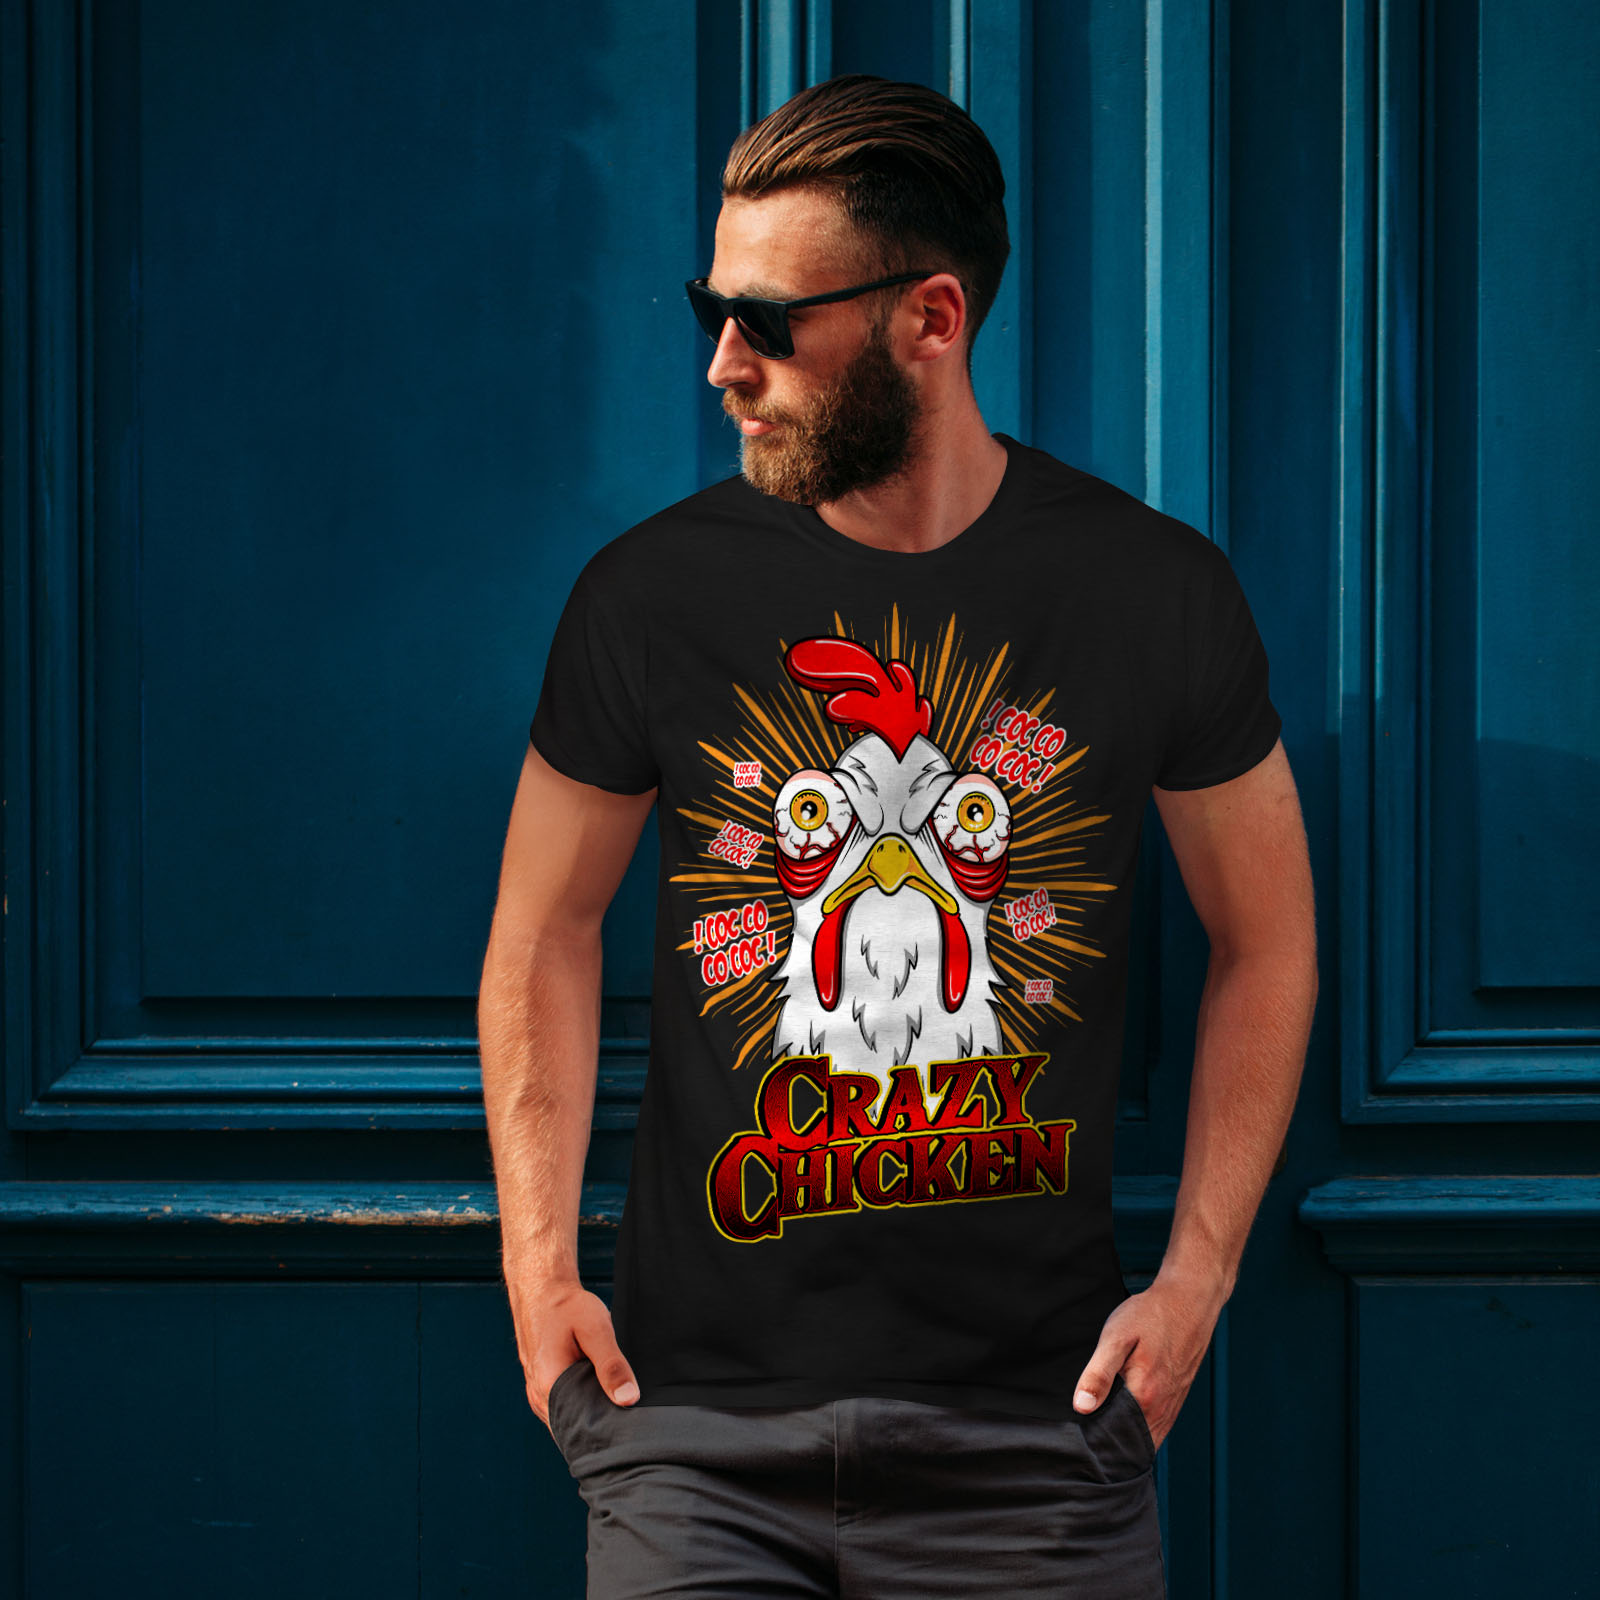 thumbnail 4 - Wellcoda-Crazy-Chicken-Mens-T-shirt-Funny-Face-Graphic-Design-Printed-Tee